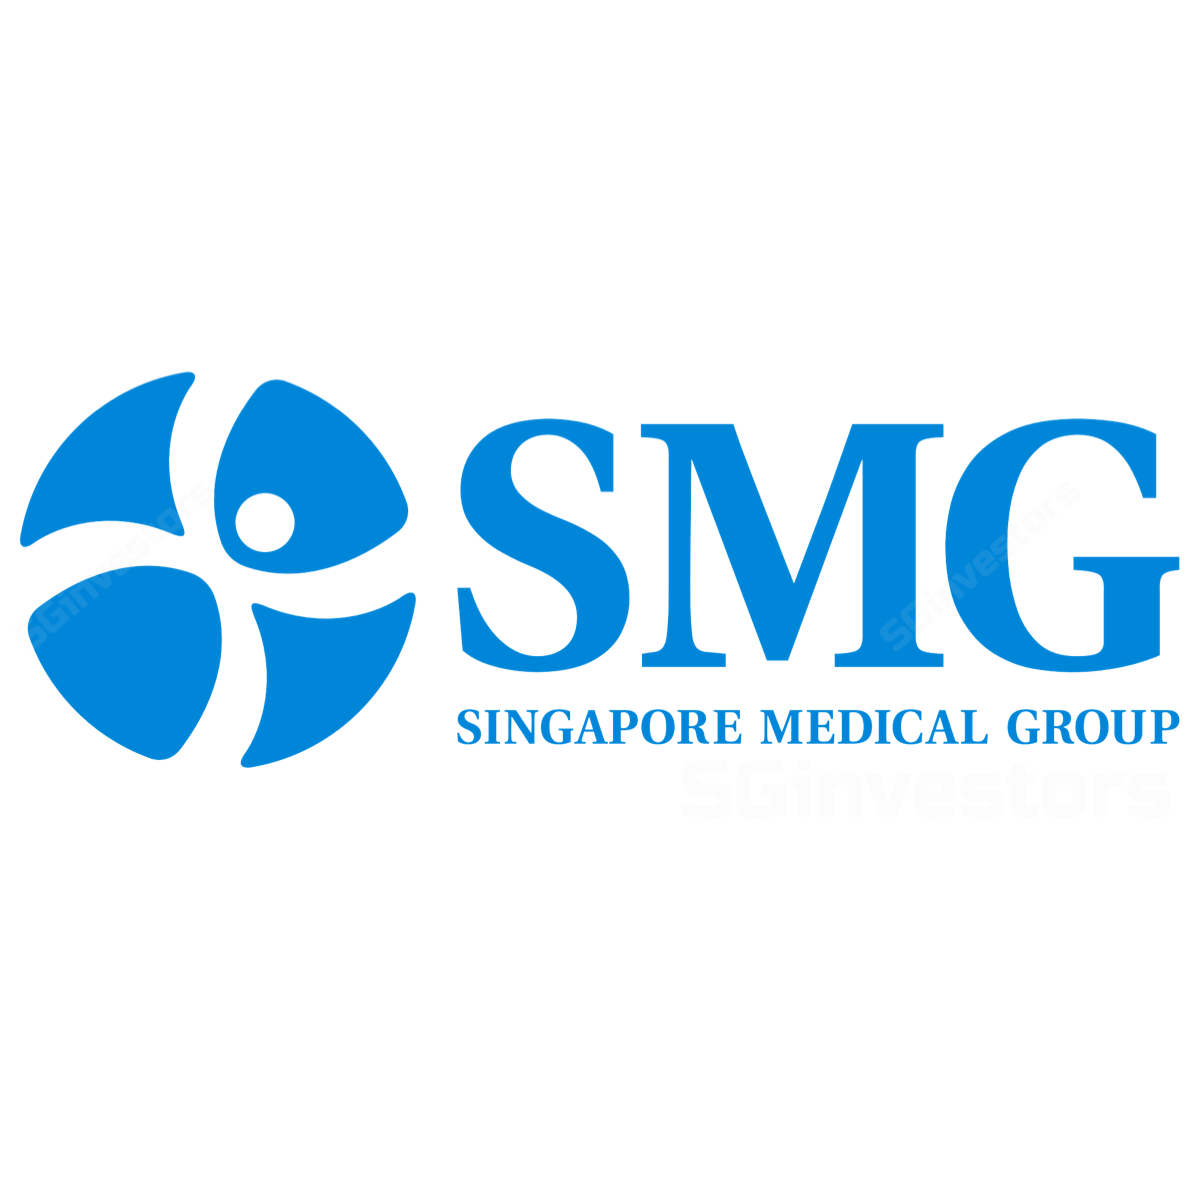 Singapore Medical Group - RHB Securities Research 2018-08-15: Strong Growth As M&a Contribution Kicks In